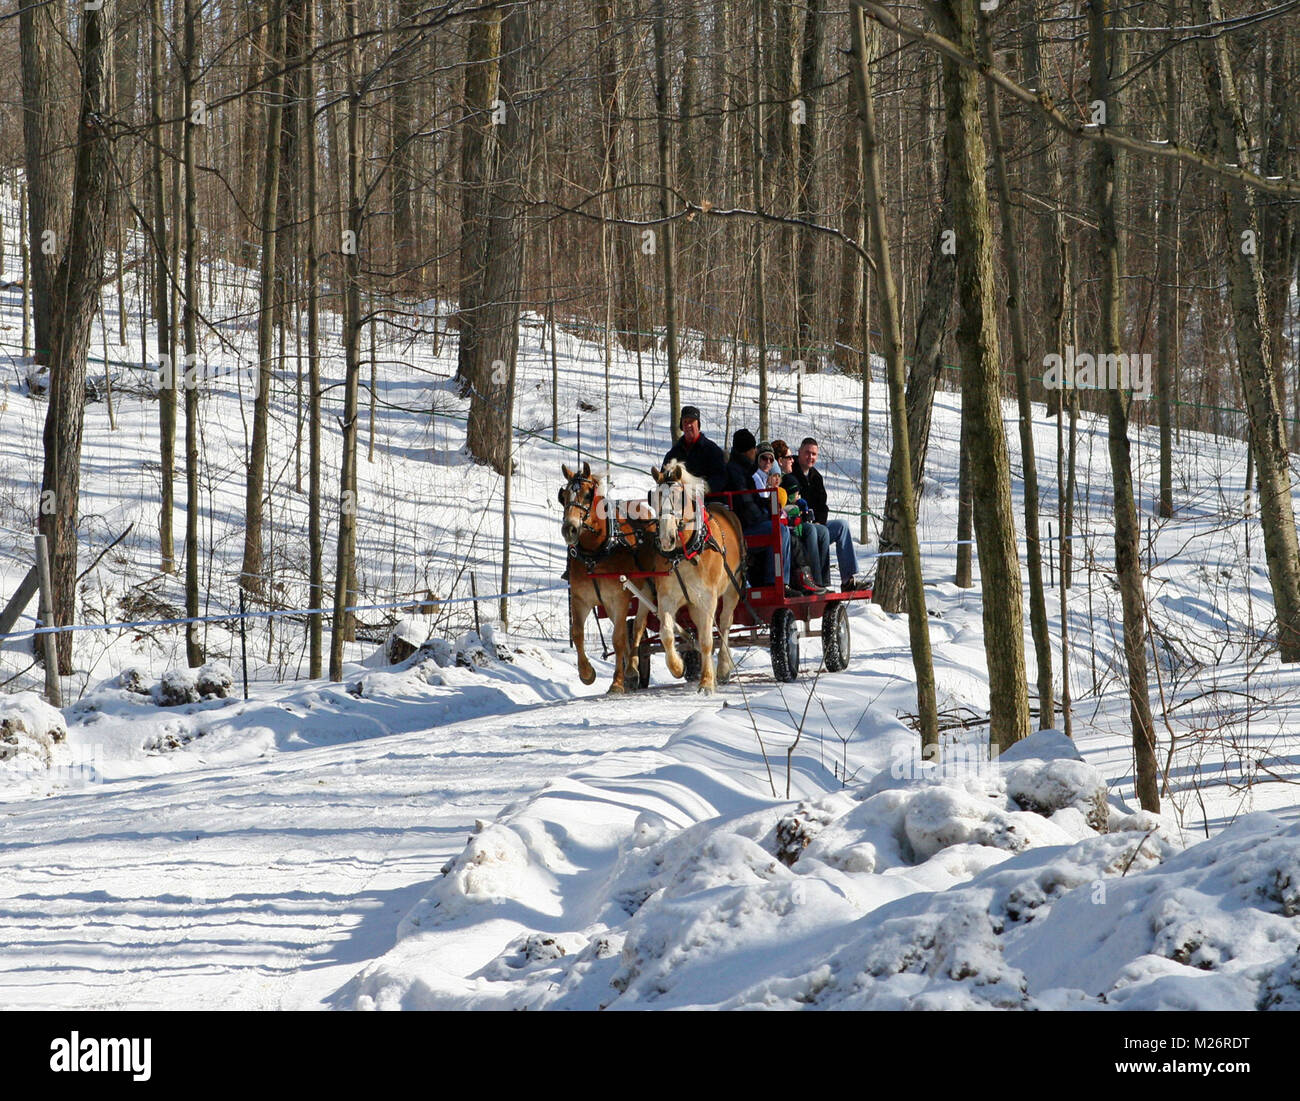 A horse-drawn wagon with families onboard passes through a forest in the winter time. There's snow among the - Stock Image